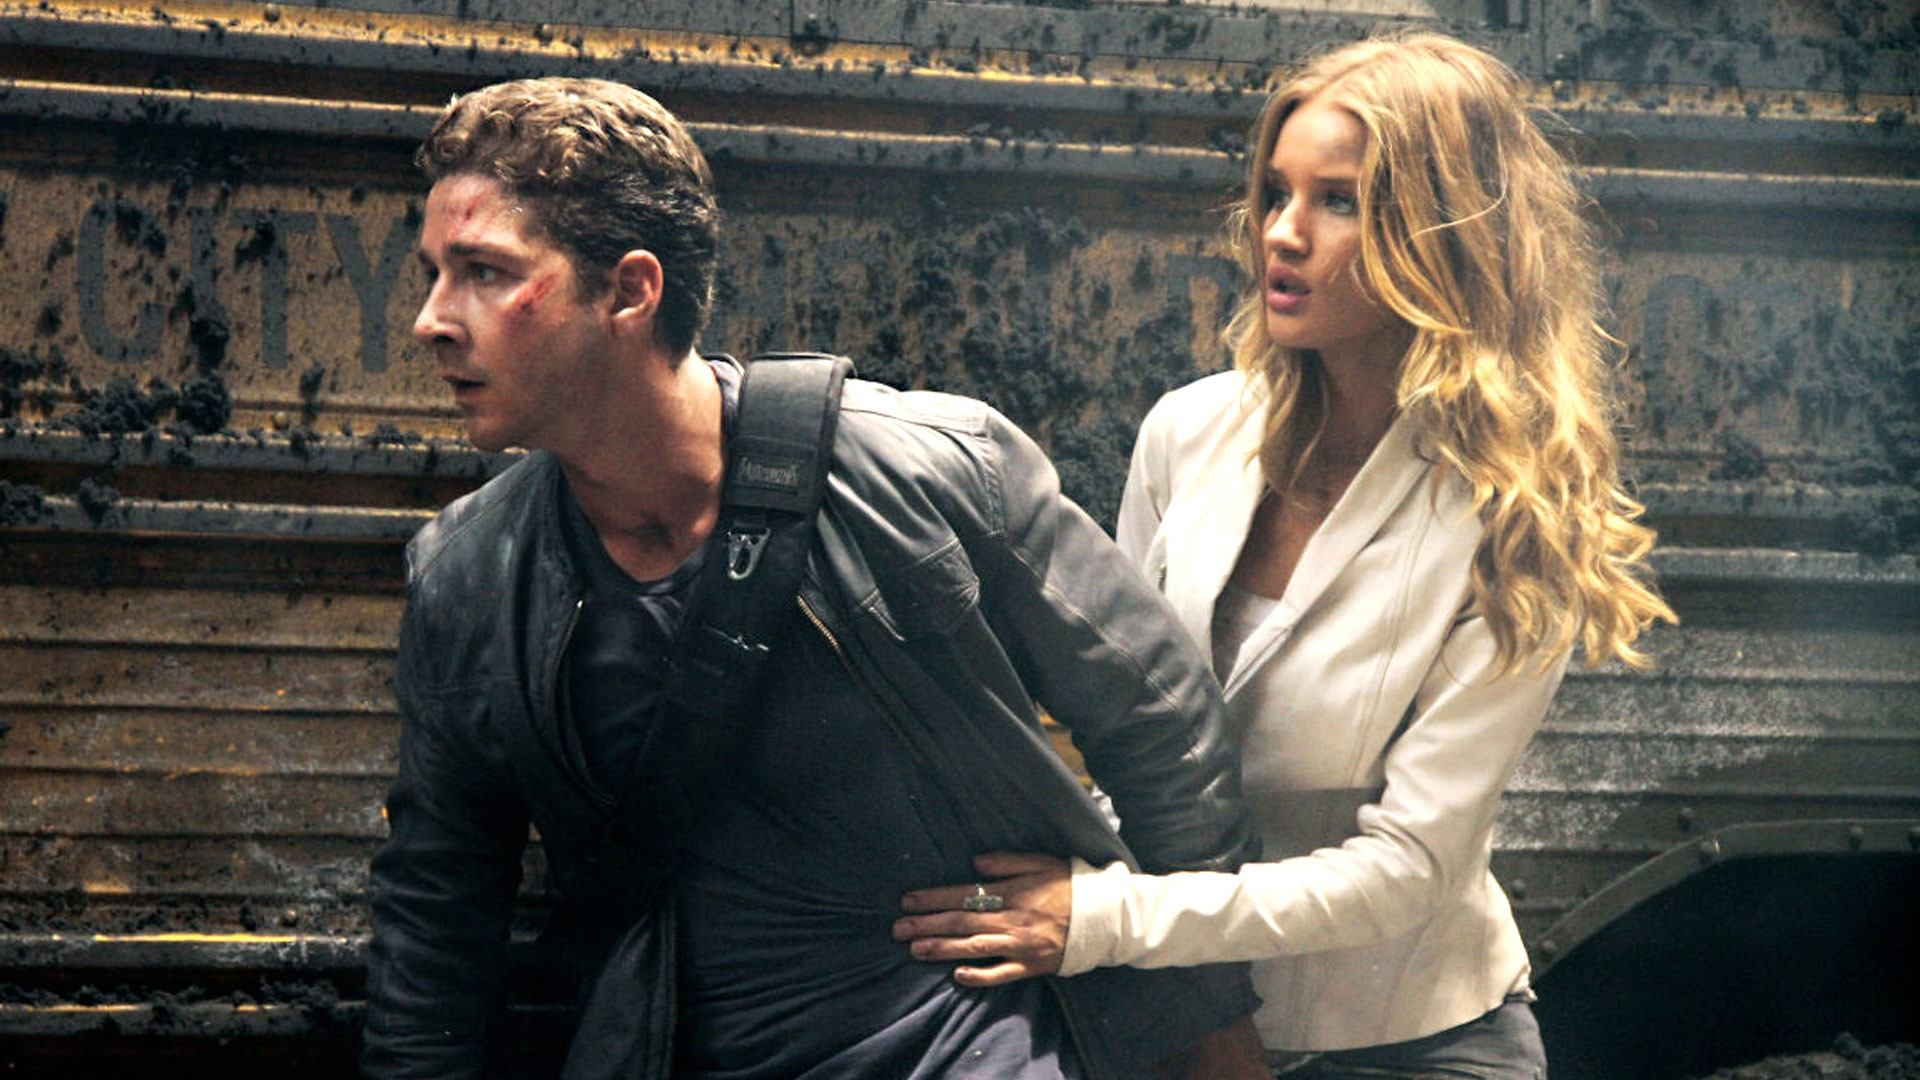 Shia LaBeouf and Rosie Huntington-Whiteley in Transformers: Dark of the Moon